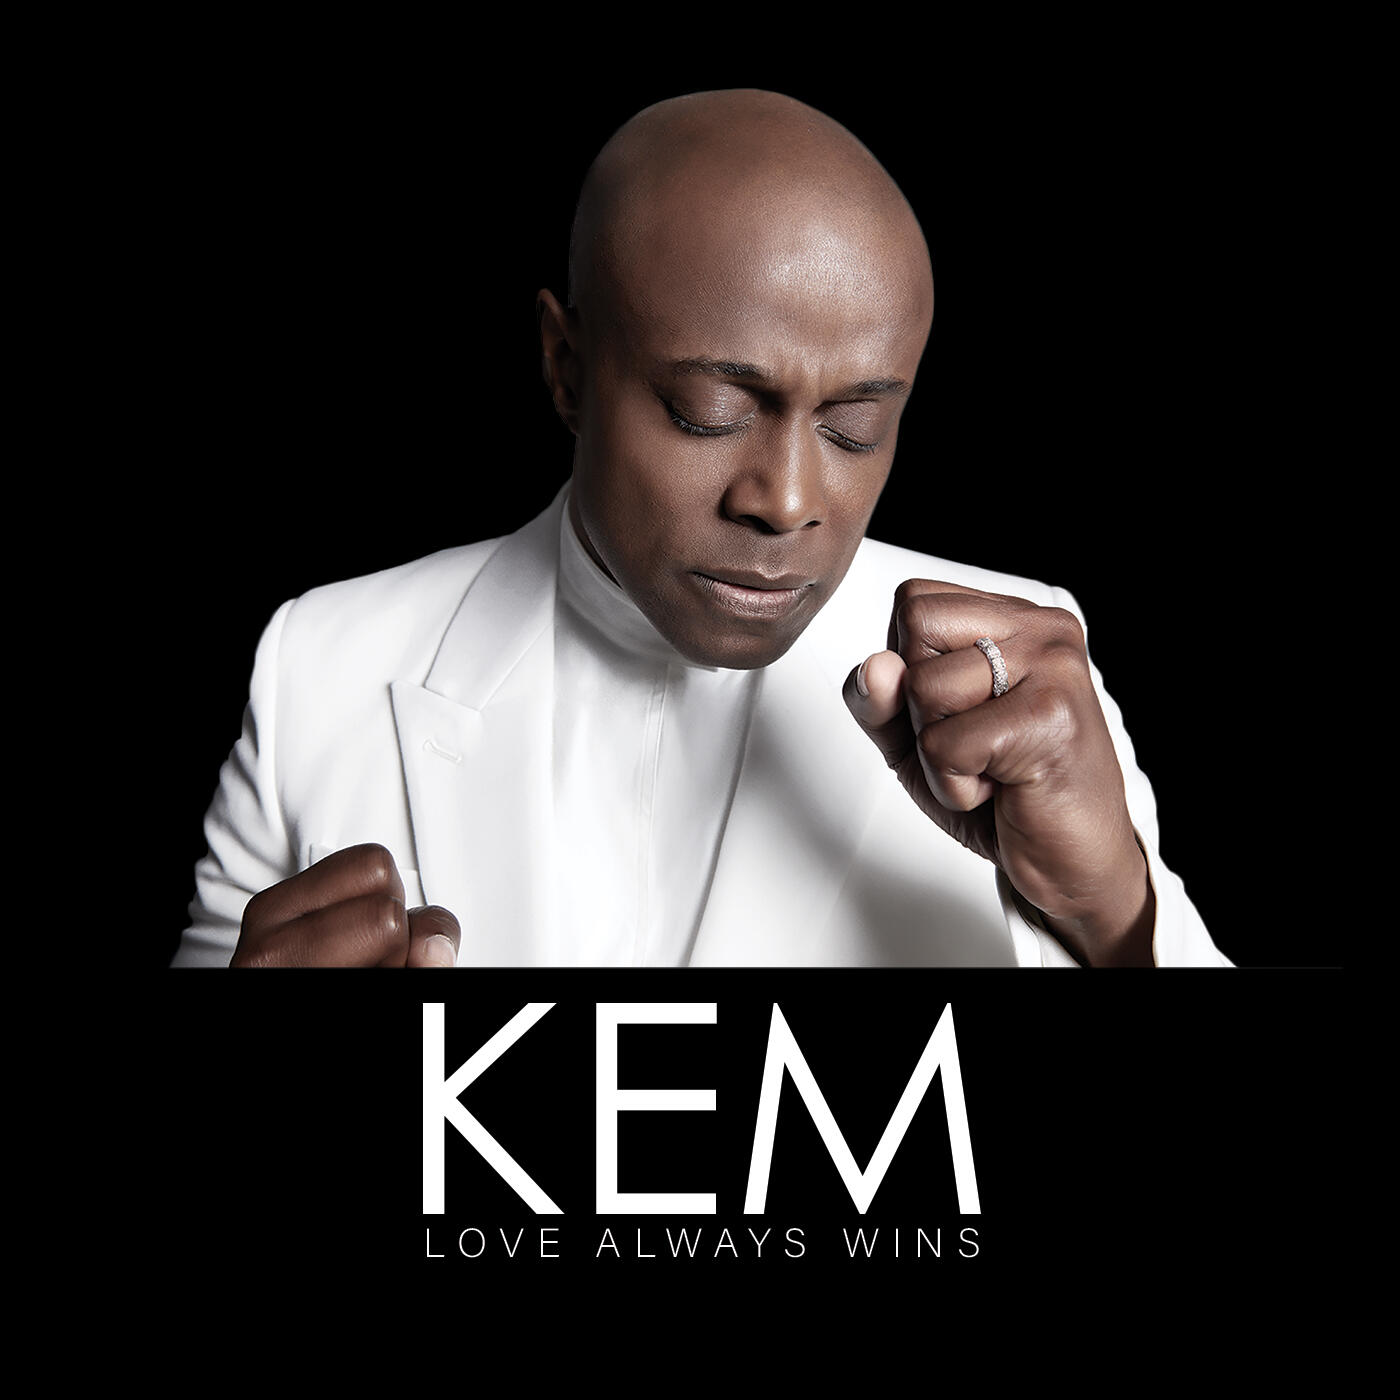 Kem Radio: Listen to Free Music & Get The Latest Info